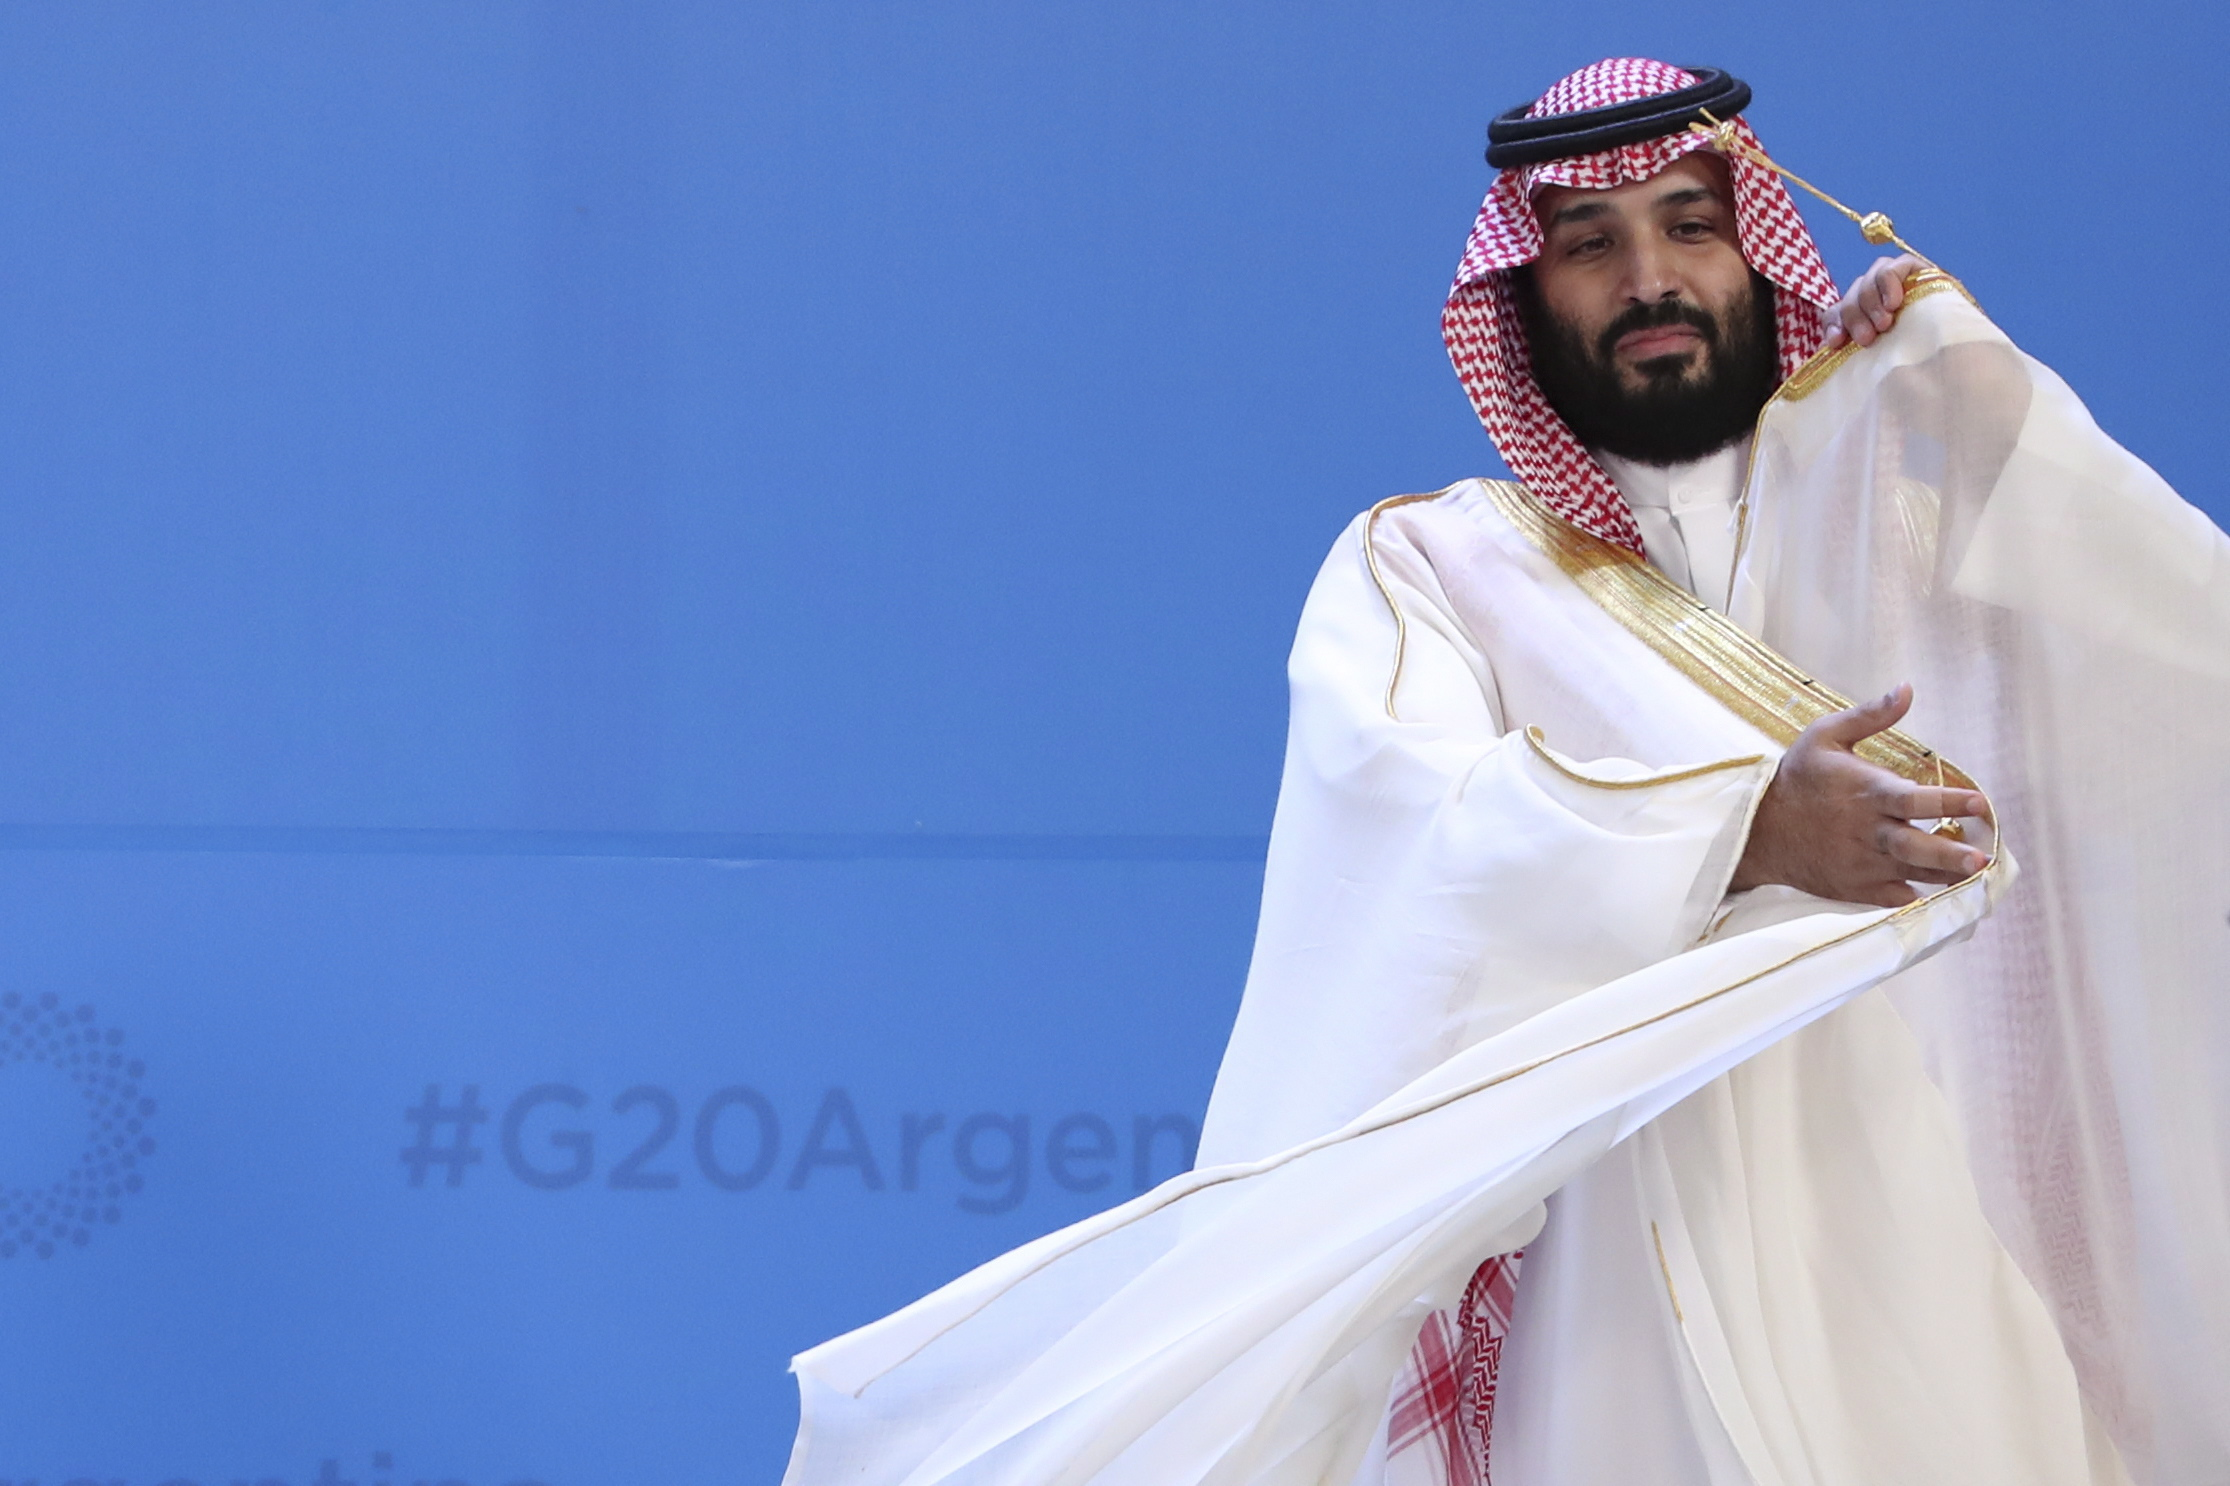 G20 Summit: May 'encourages' Saudi Arabia to co-operate in murder investigation